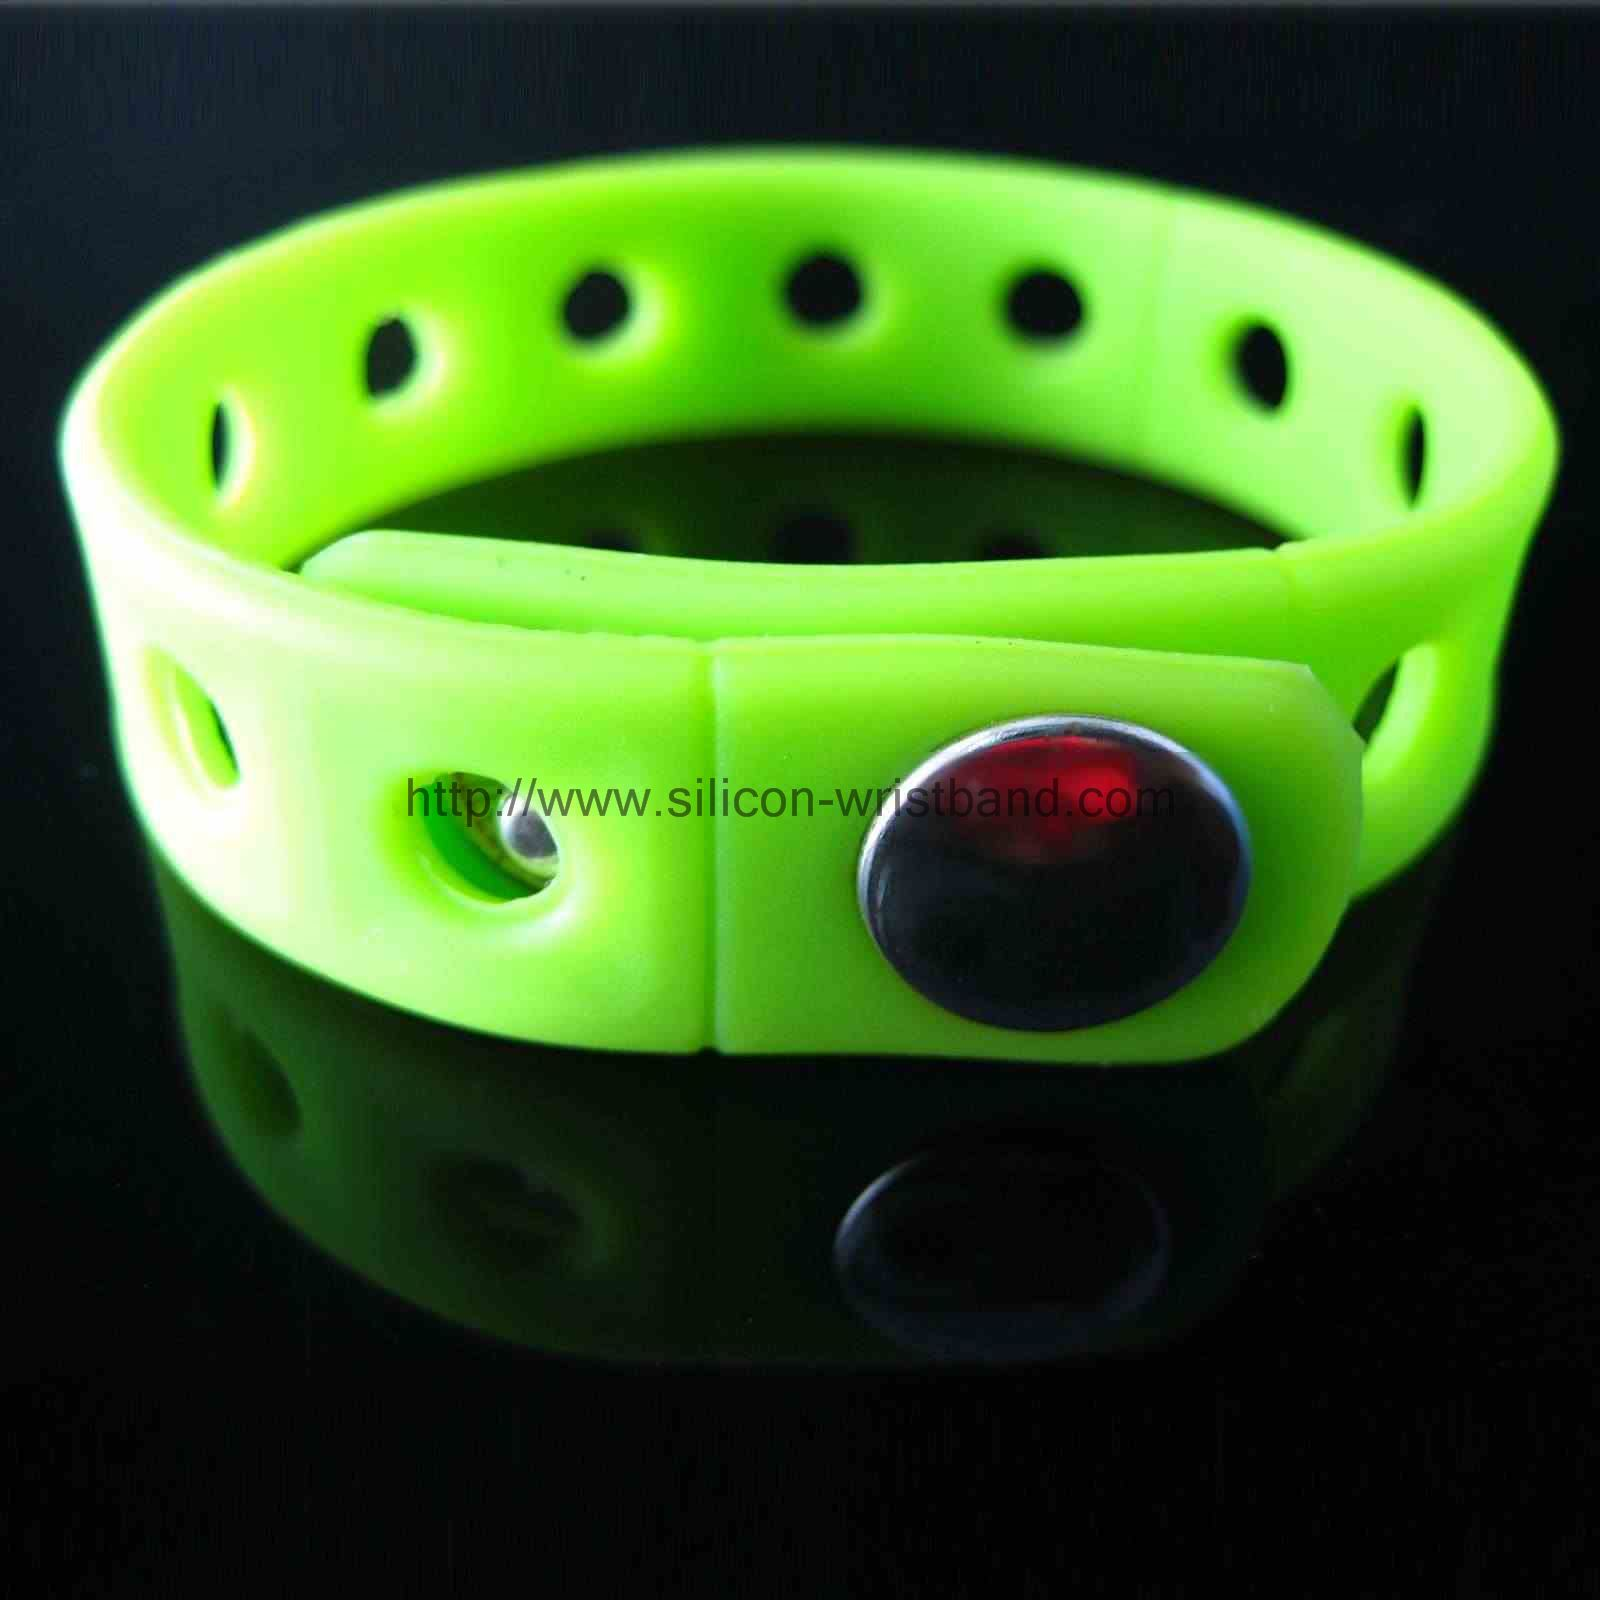 Why do some sites say they are U.S. factory production of silicone wristband?